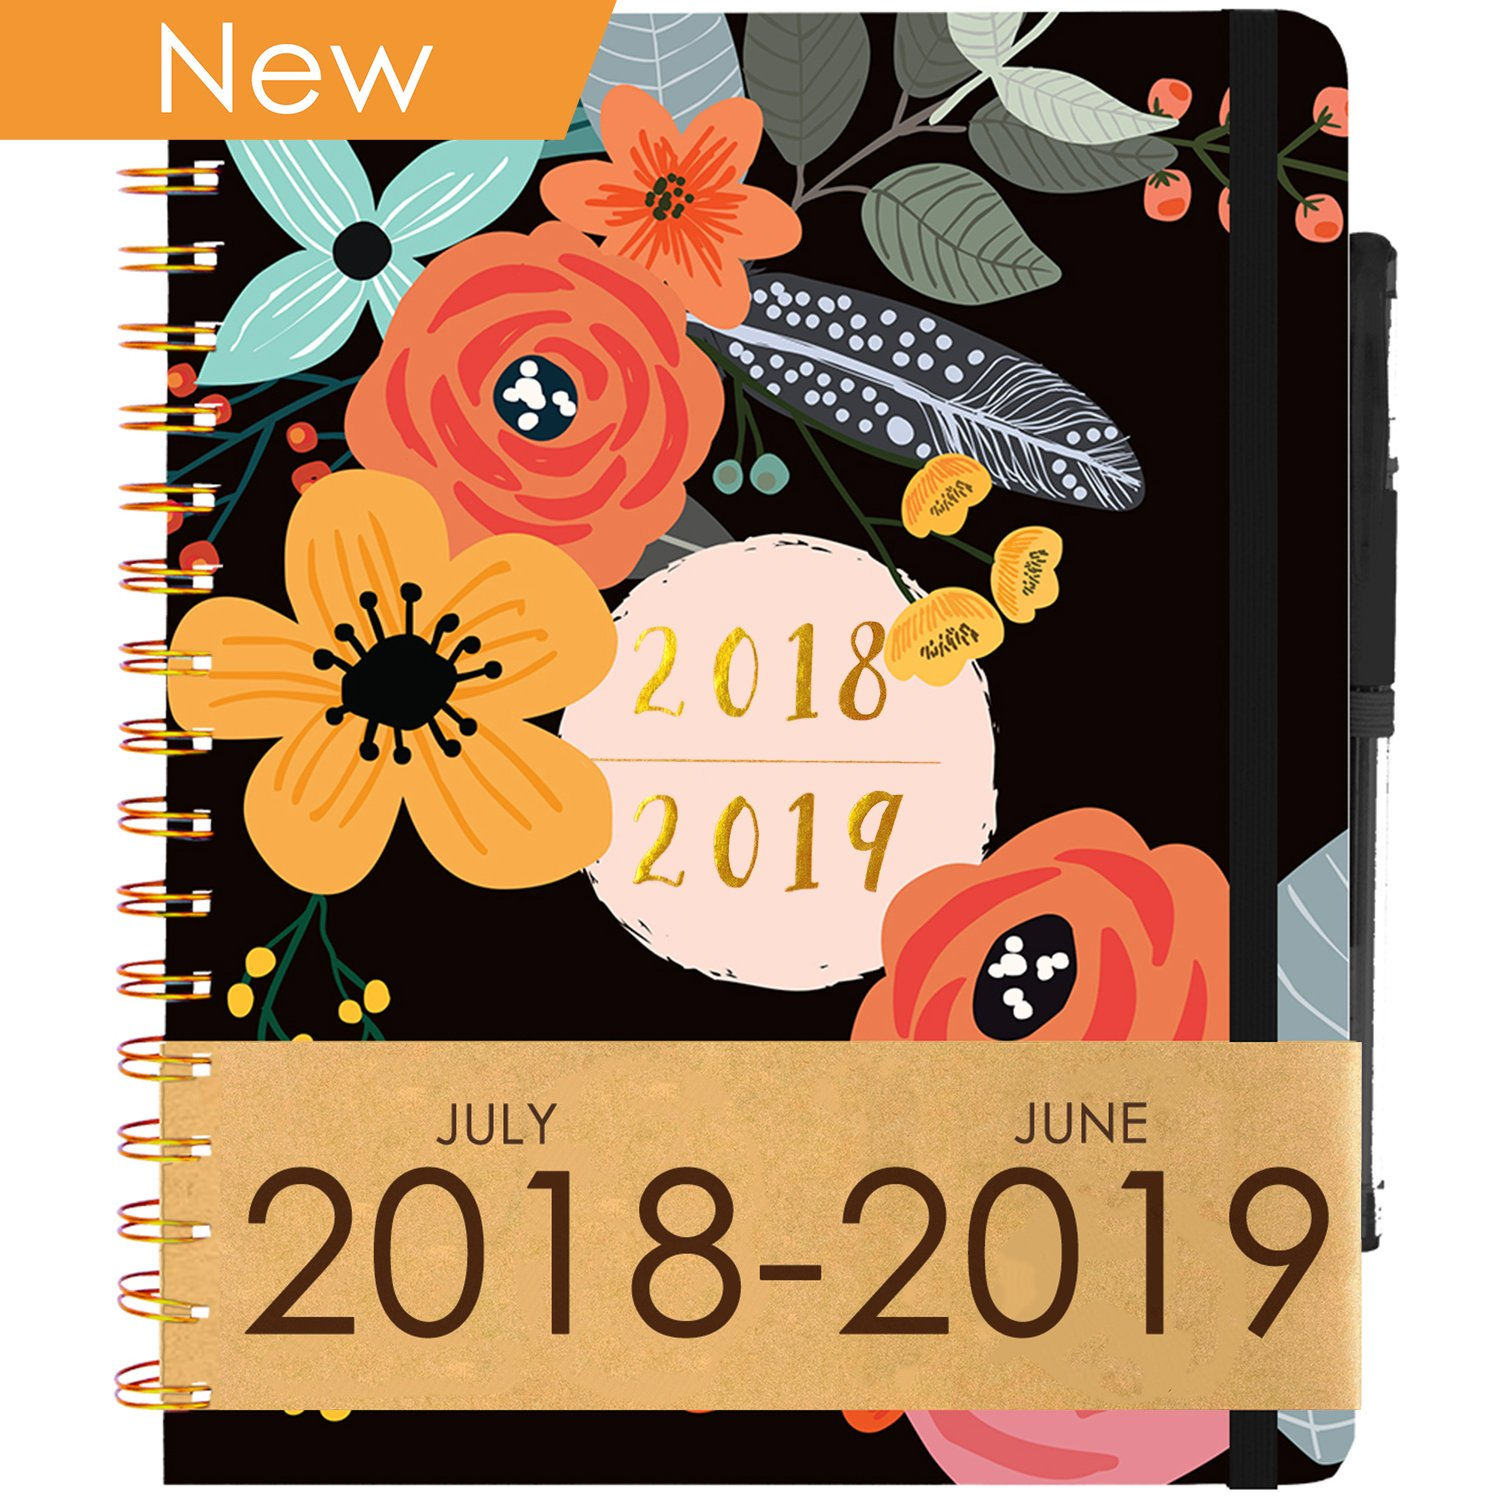 Planner 2018-2019 Academic Year (Dated Jul 18' - Jun 19') ~ Purse-Size 9''x7.5'' ~ Daily, Weekly, Monthly Calendar Agenda ~ Boost Productivity for Moms, Teachers & Students ~ Hardcover Notebook